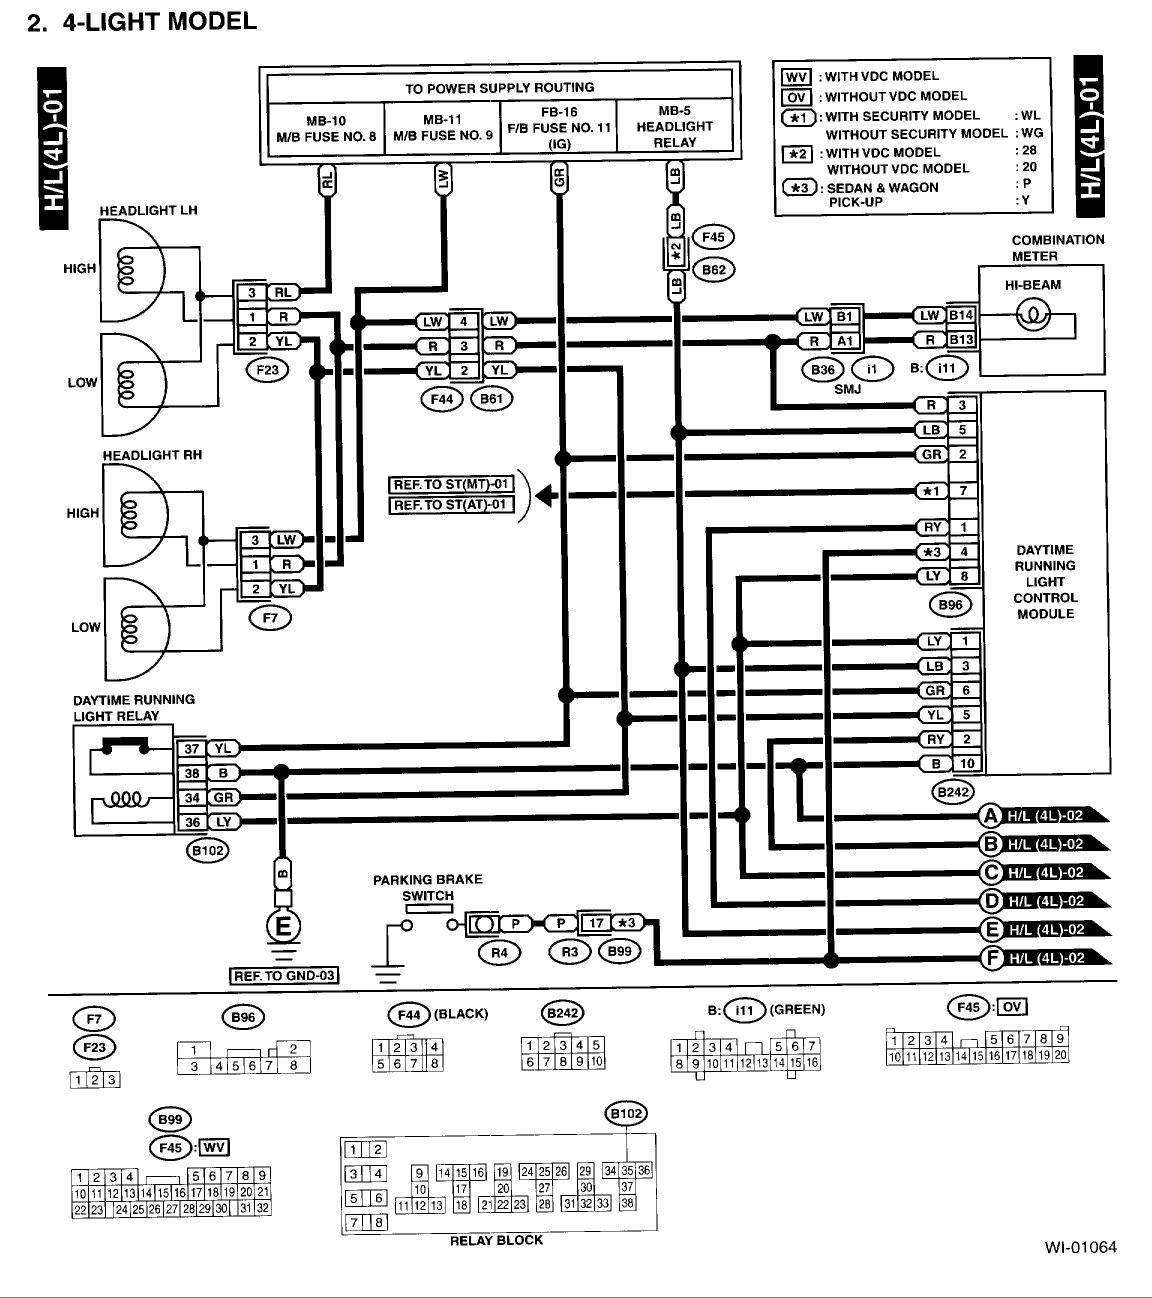 diagram] subaru outback 2018 wiring diagram full version hd quality wiring  diagram - allkeralajobvacancy.touslesmemes.fr  allkeralajobvacancy.touslesmemes.fr